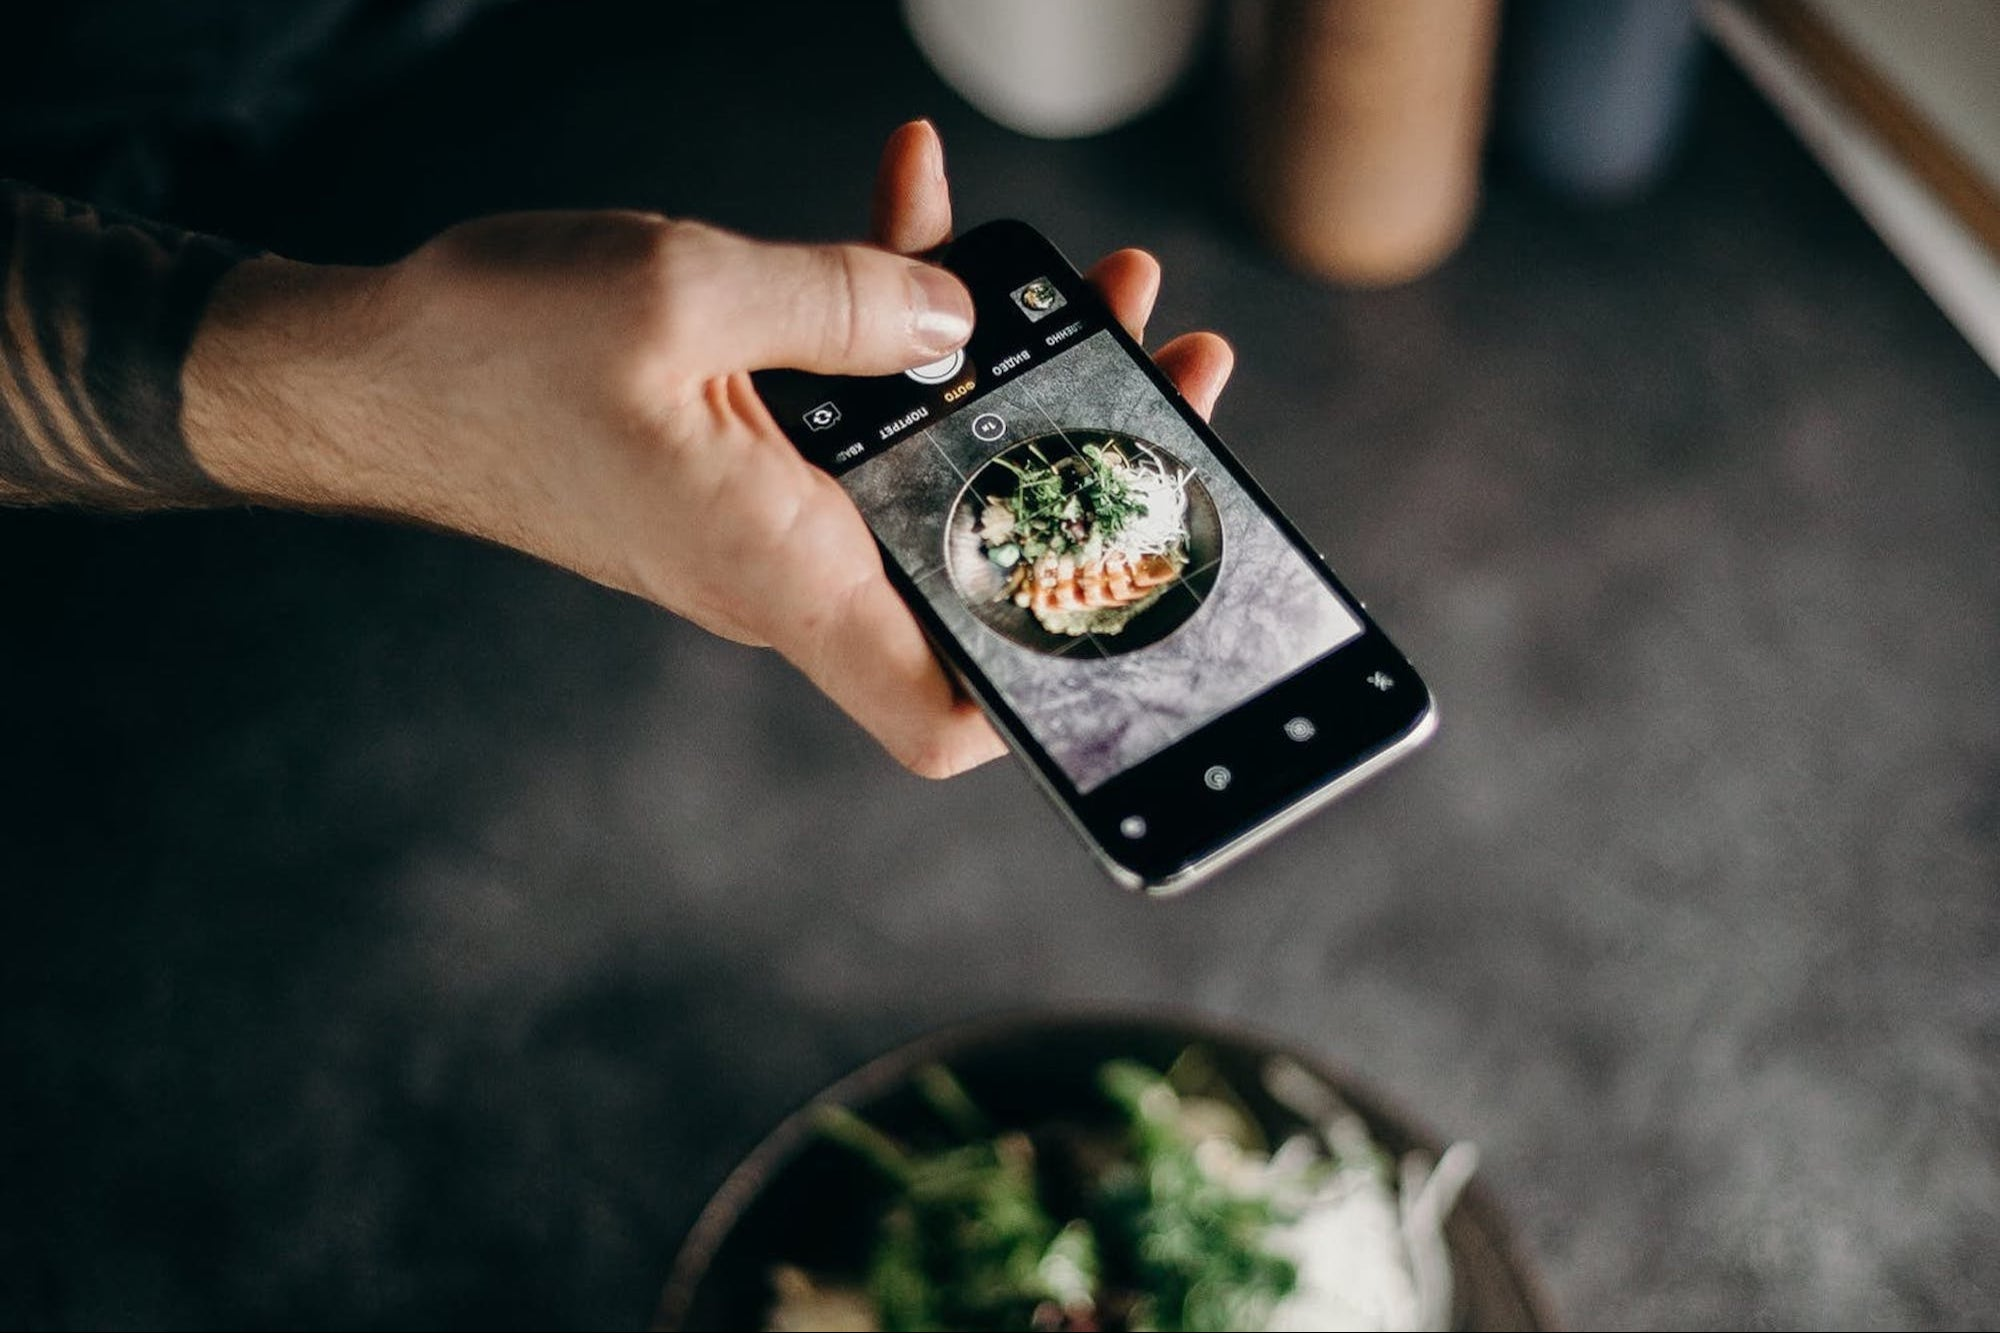 Leverage Instagram Like a Pro With This $14 Course